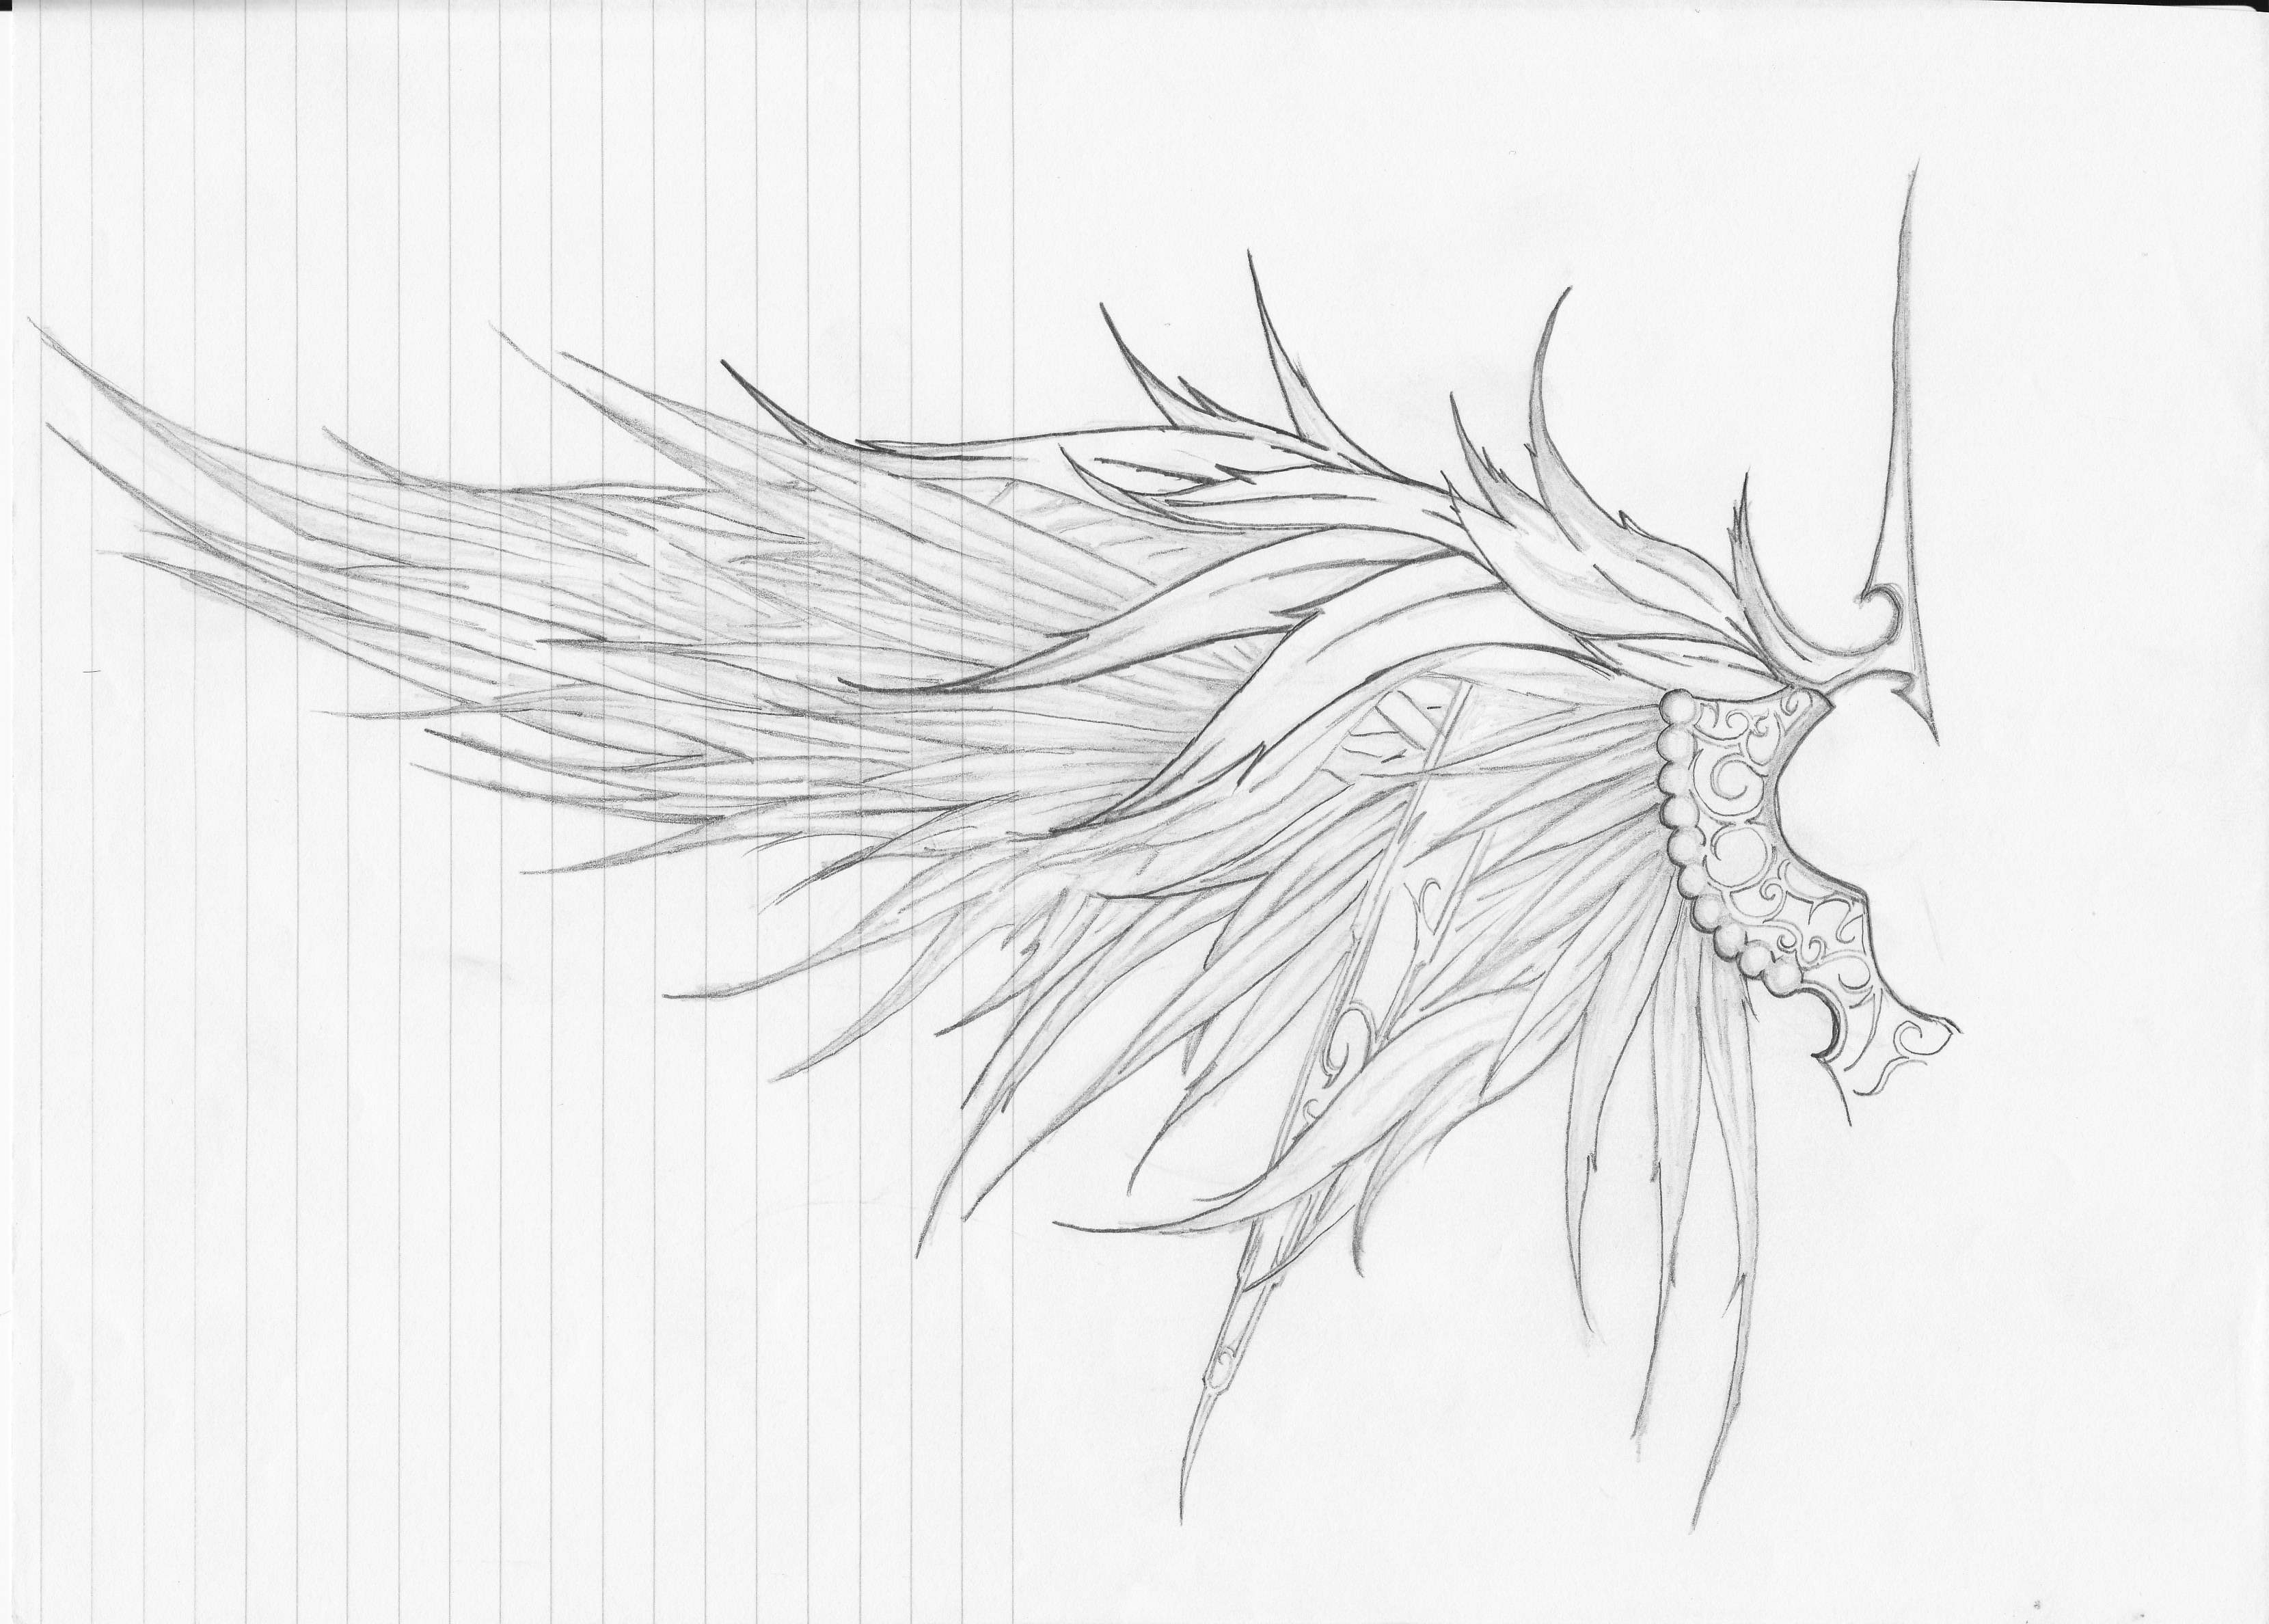 Drawn angel side view #3